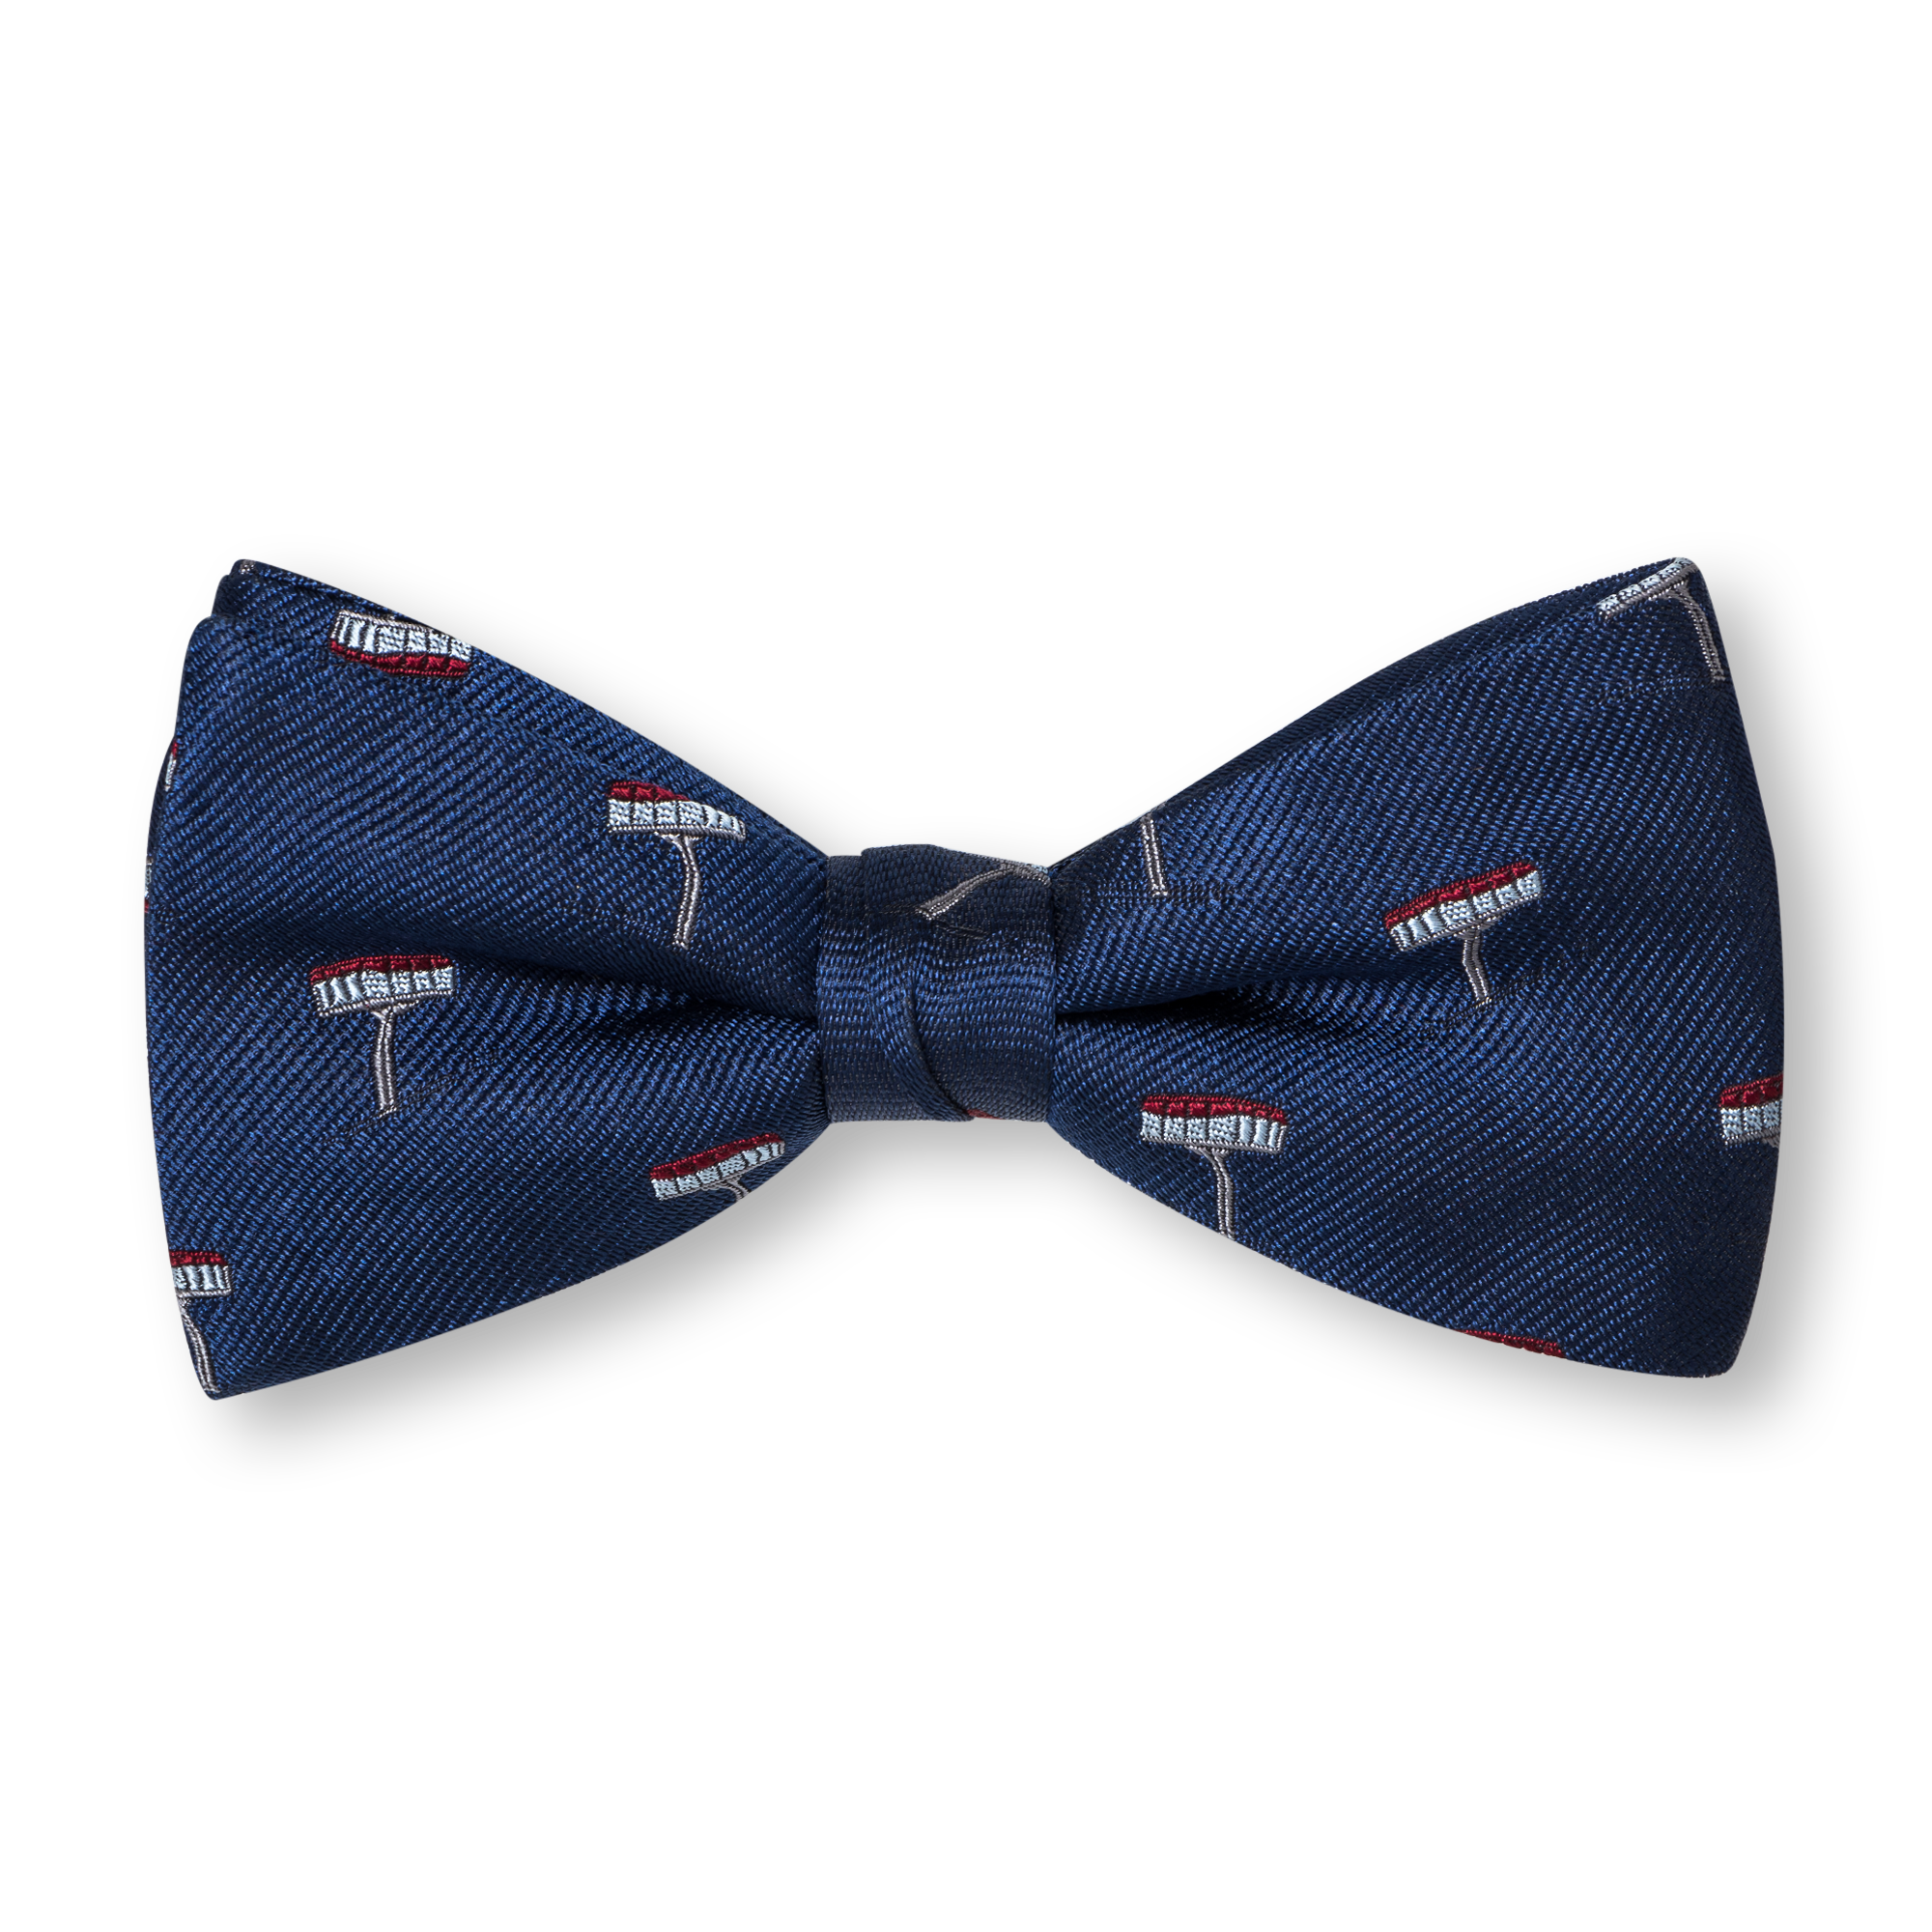 Bow ties product photography